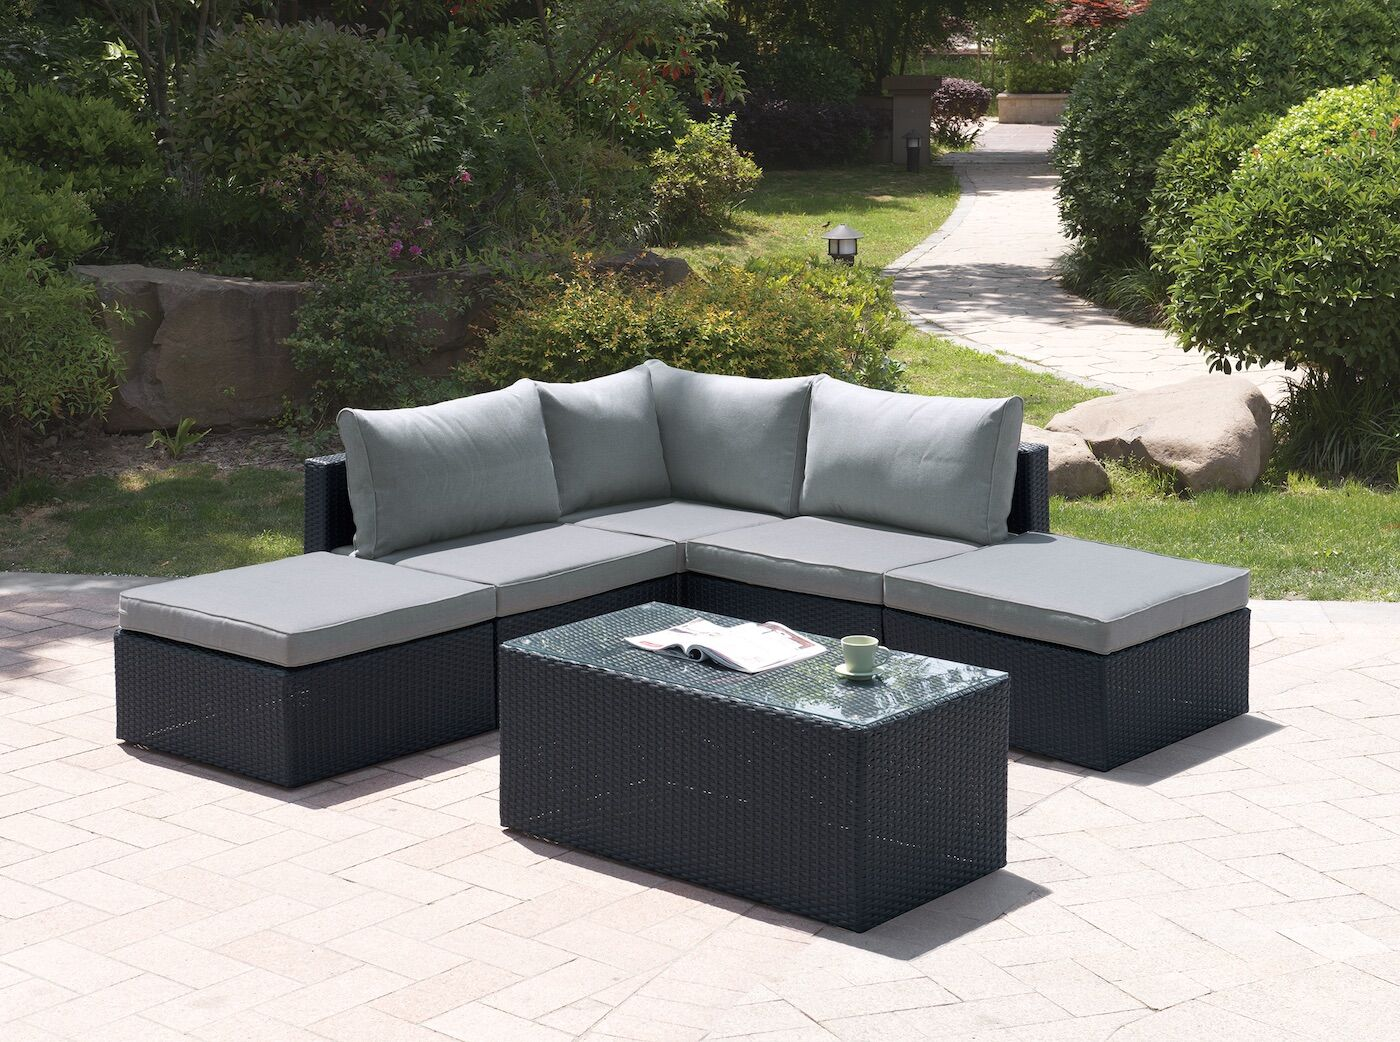 6 Piece Sectional Set with Cushions Color: Modern Black